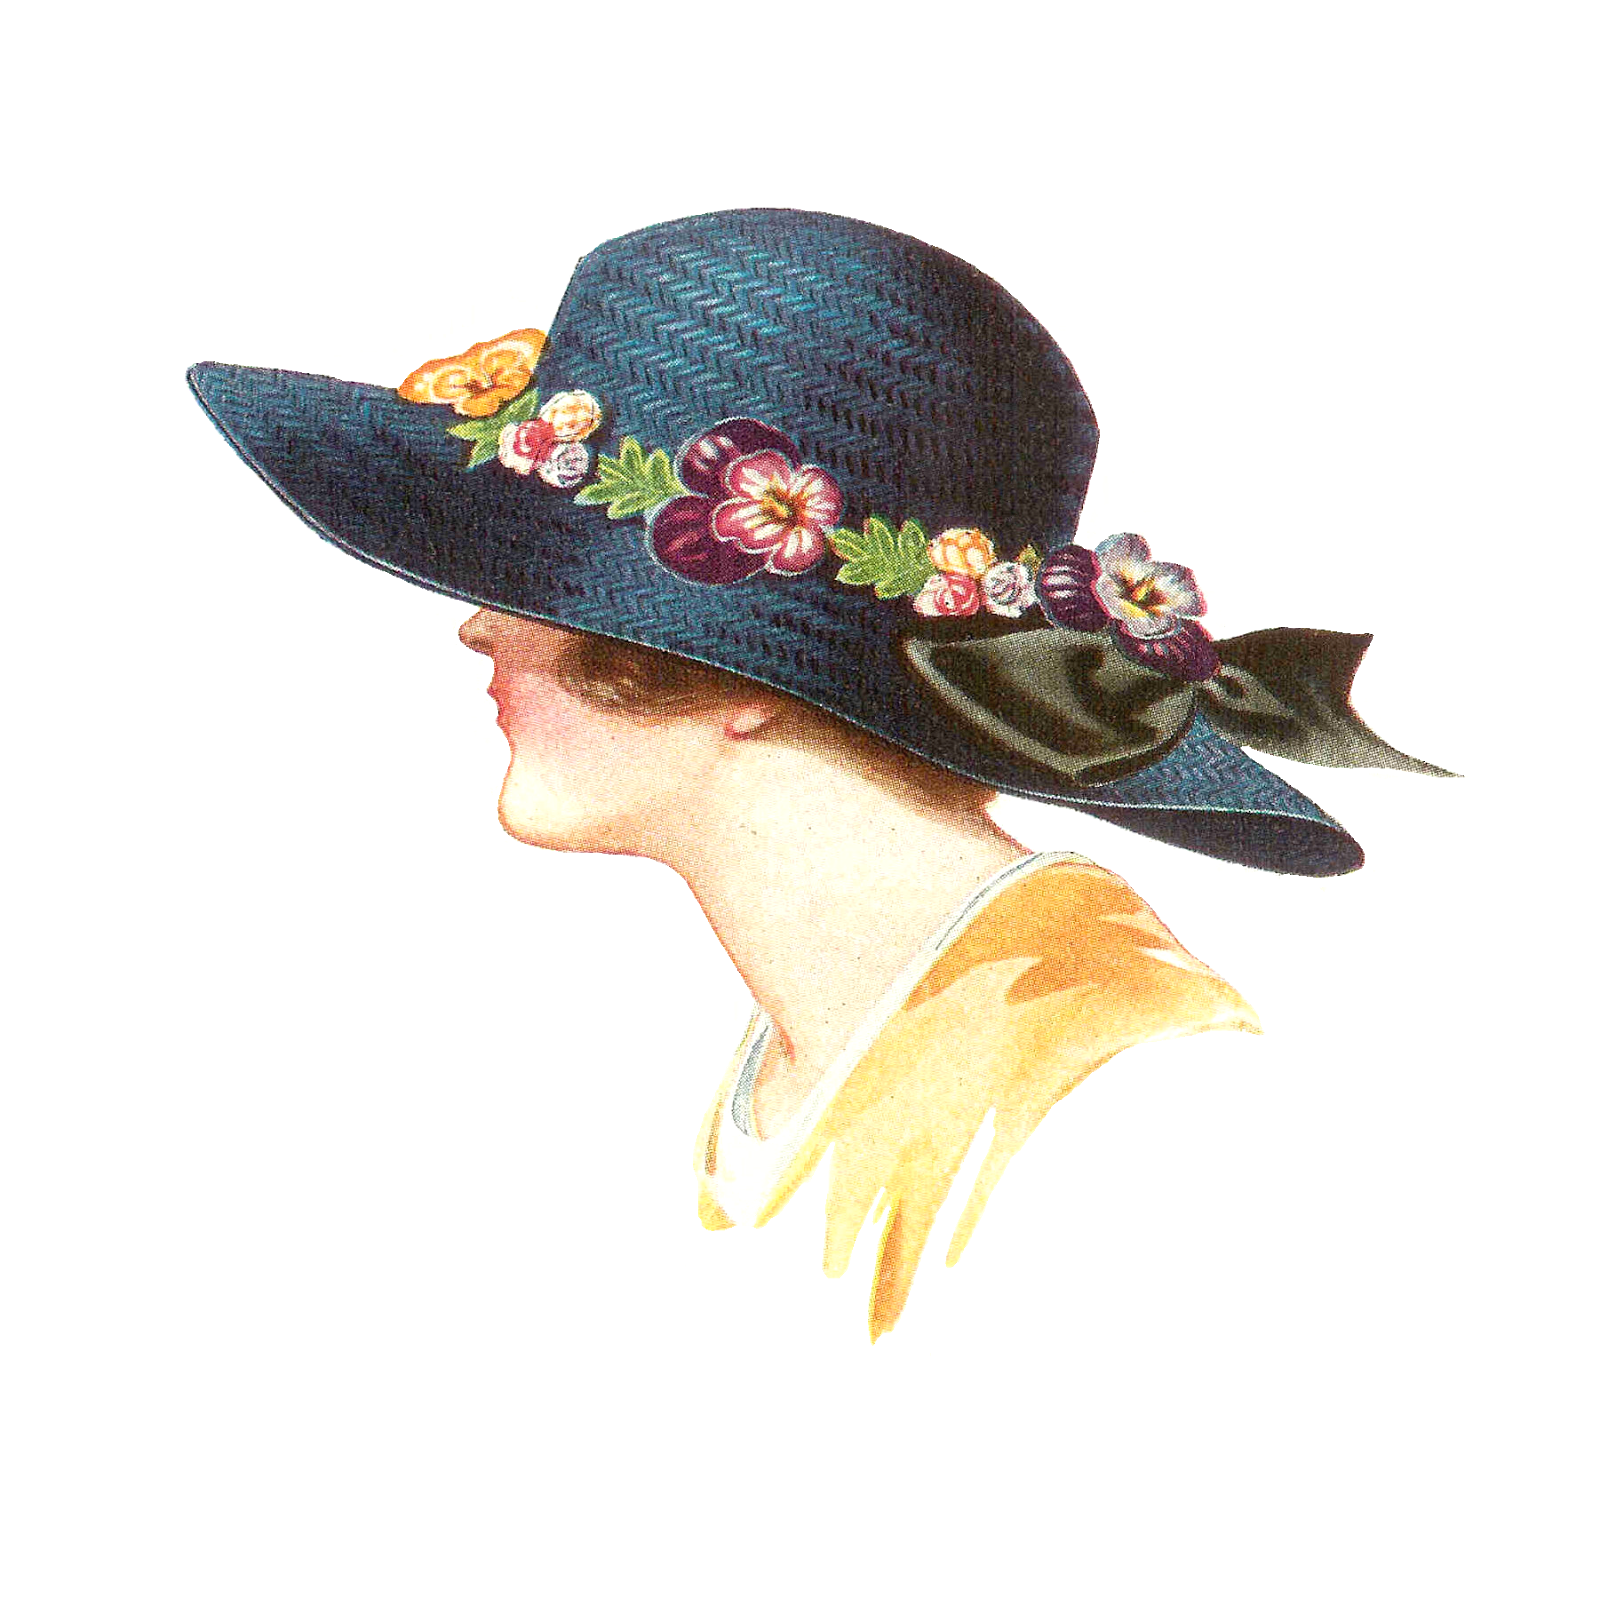 Antique Images: Free Hat Fashion Clip Art: 1915 Women's Spring Hat.